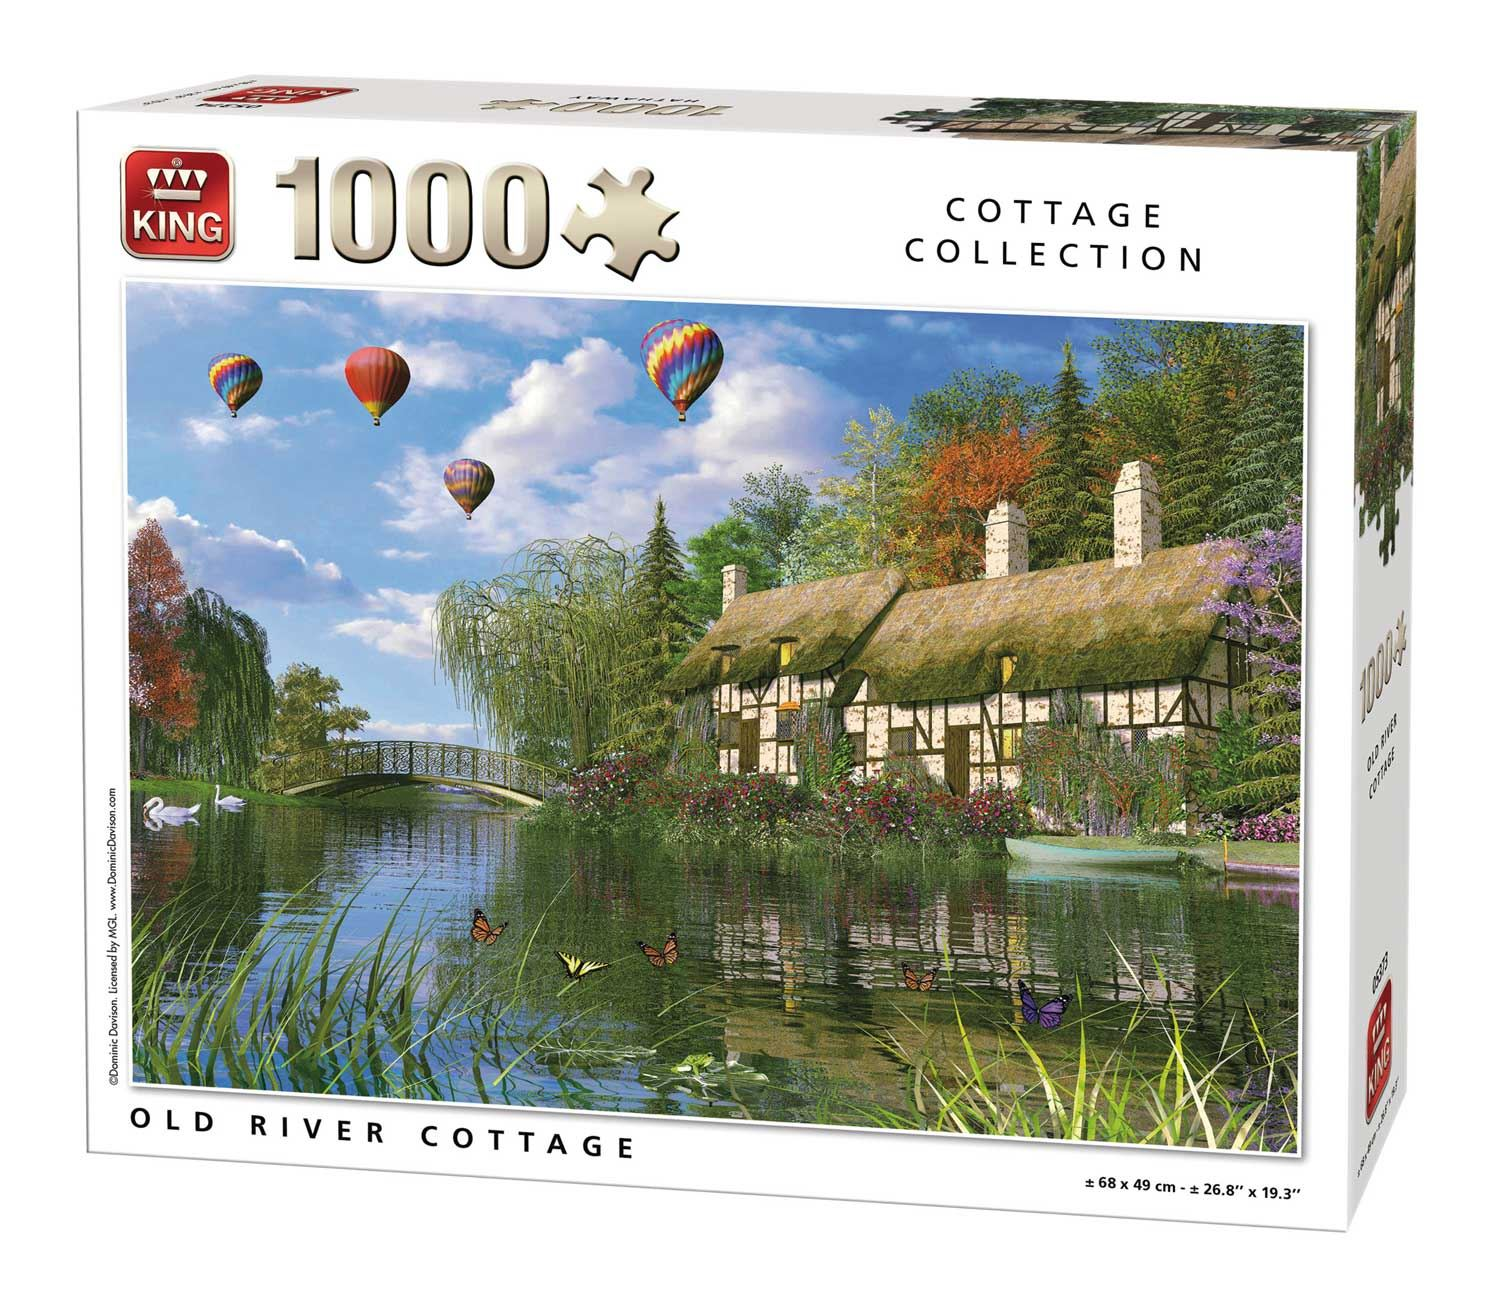 King Old River Cottage Jigsaw Puzzle (1000 Pieces)